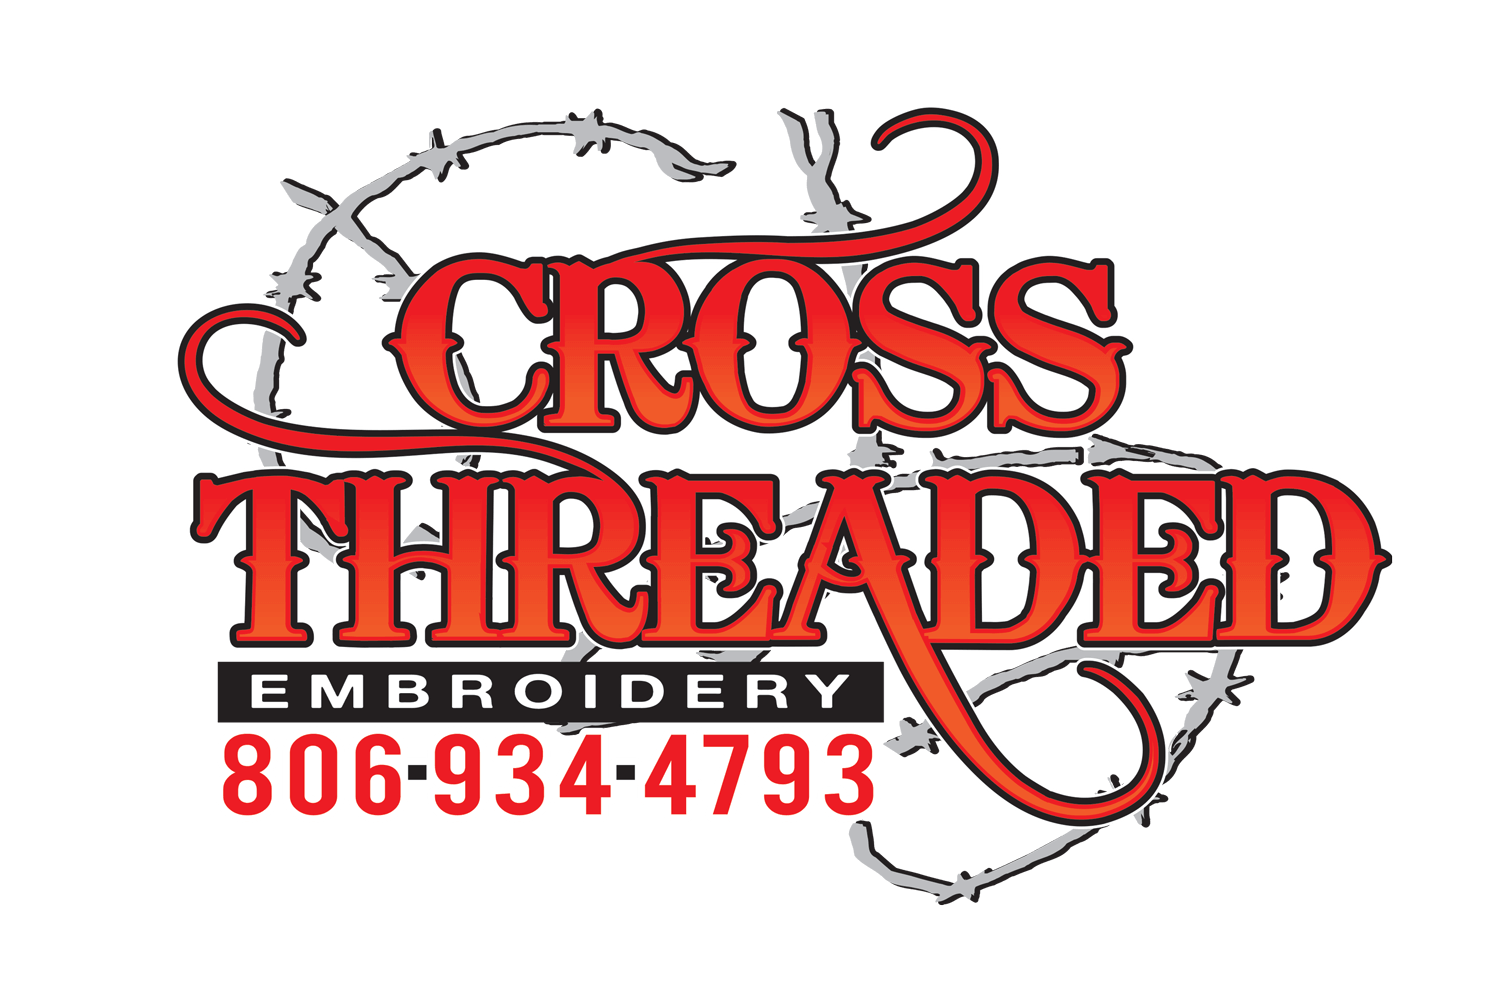 https://crossthreadedembroidery.com